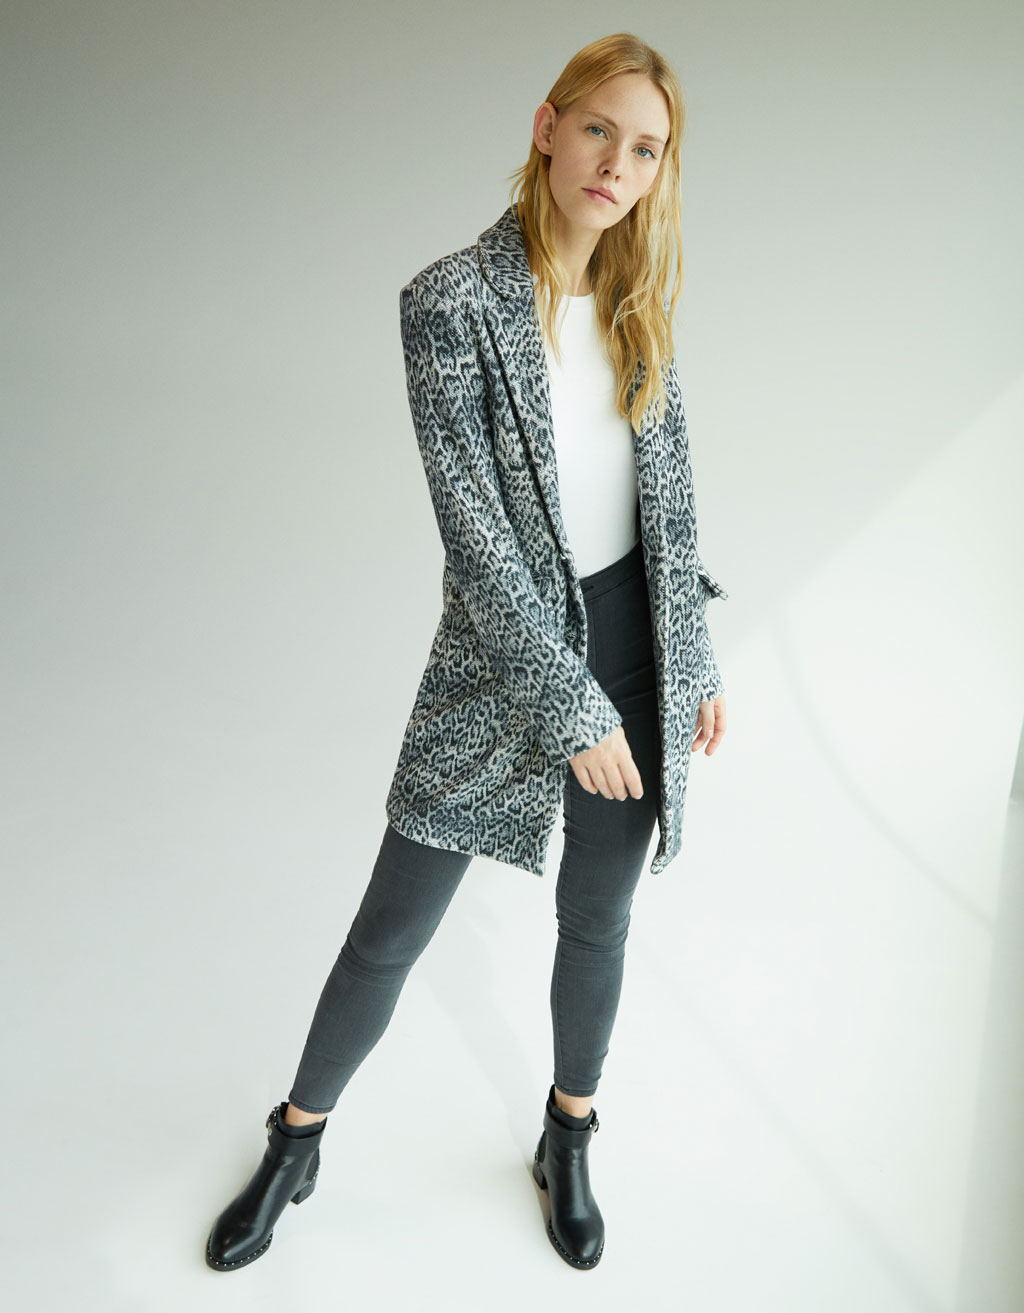 Manteau animal print